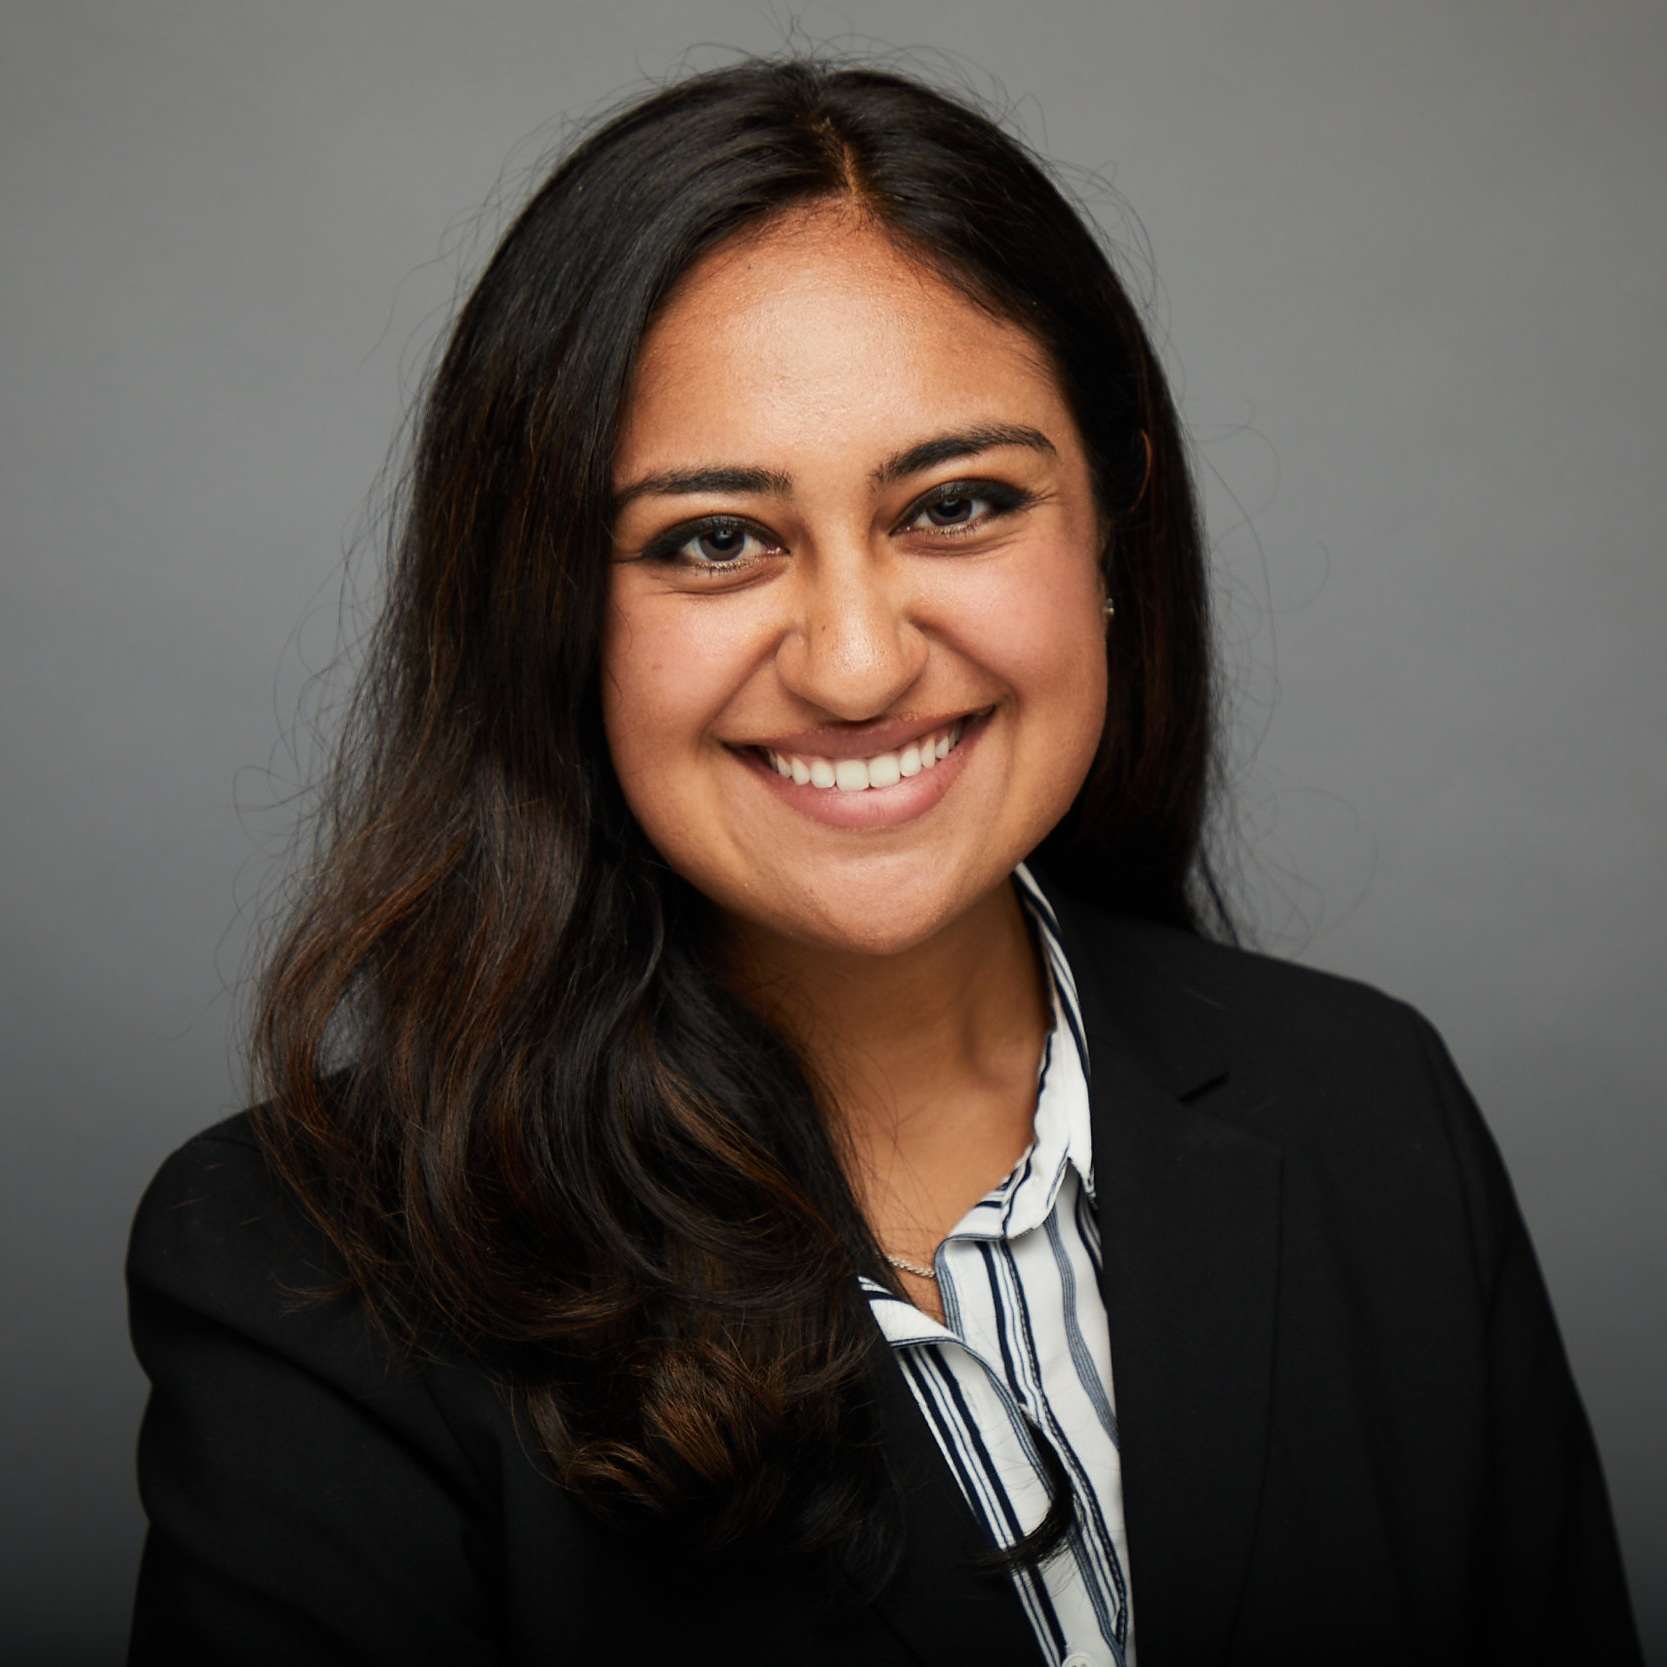 Safeena Mecklai  is a current second-year student at the  New York University School of Law . Prior to starting at NYU Law, Safeena worked as a lobbyist and strategic consultant with the top government relations firm in New York City. As the founder and head of Capalino+Company's Digital Strategy practice, Safeena co-founded the firm's flagship mobile application ,  MWBE Connect NY. Safeena is a graduate of the Coro Fellowship in Public Affairs, a post-graduate leadership training program in NYC, and the University of California, Berkeley.